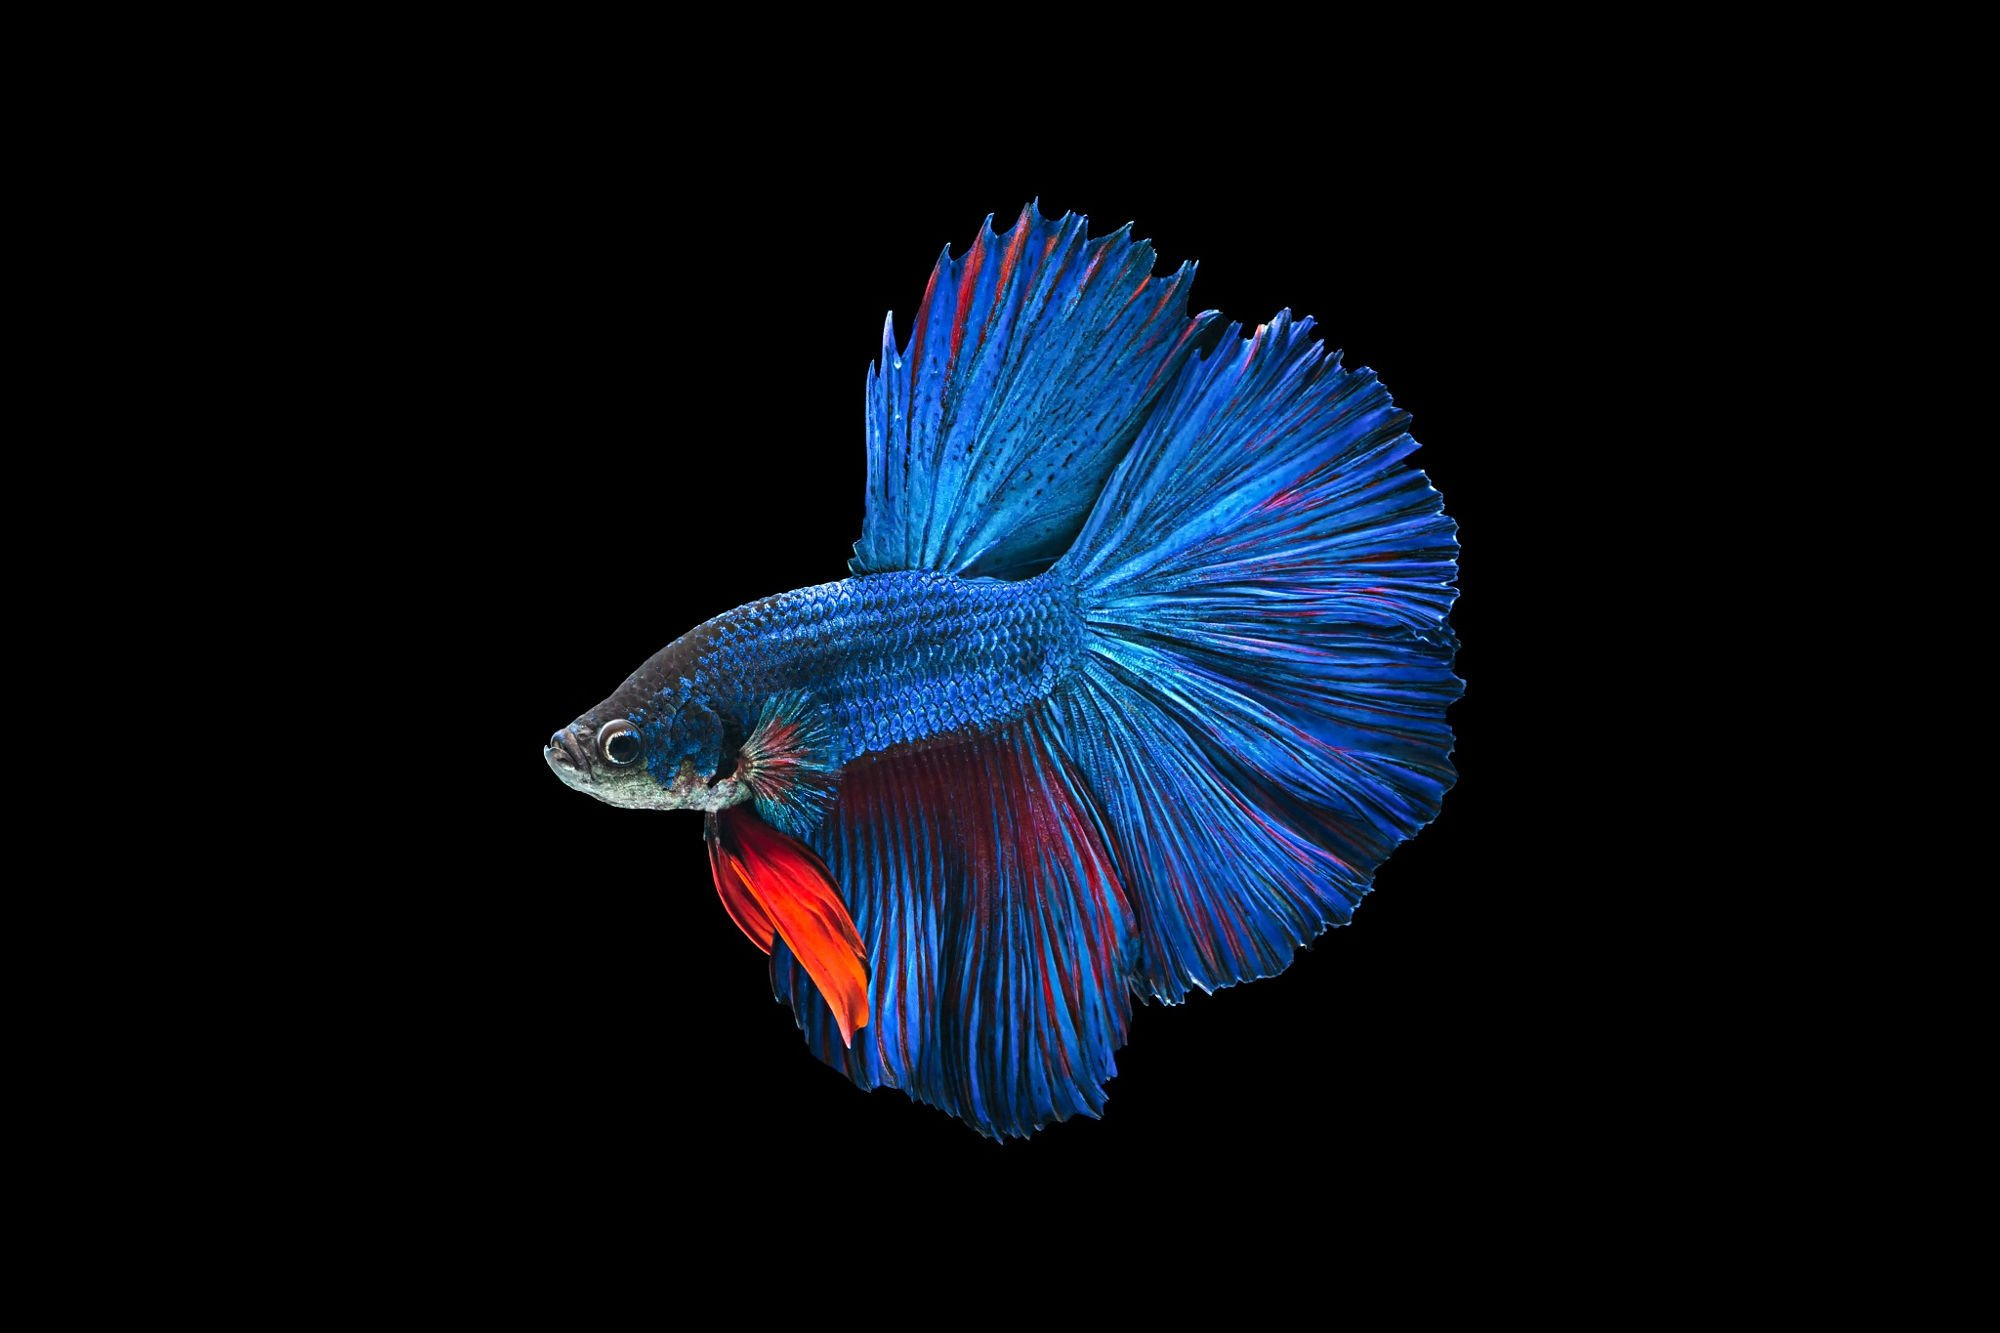 betta siamese fighting fish underwater tropical psychedelicbetta siamese fighting fish underwater tropical psychedelic wallpaper 2000x1333 918309 wallpaperup